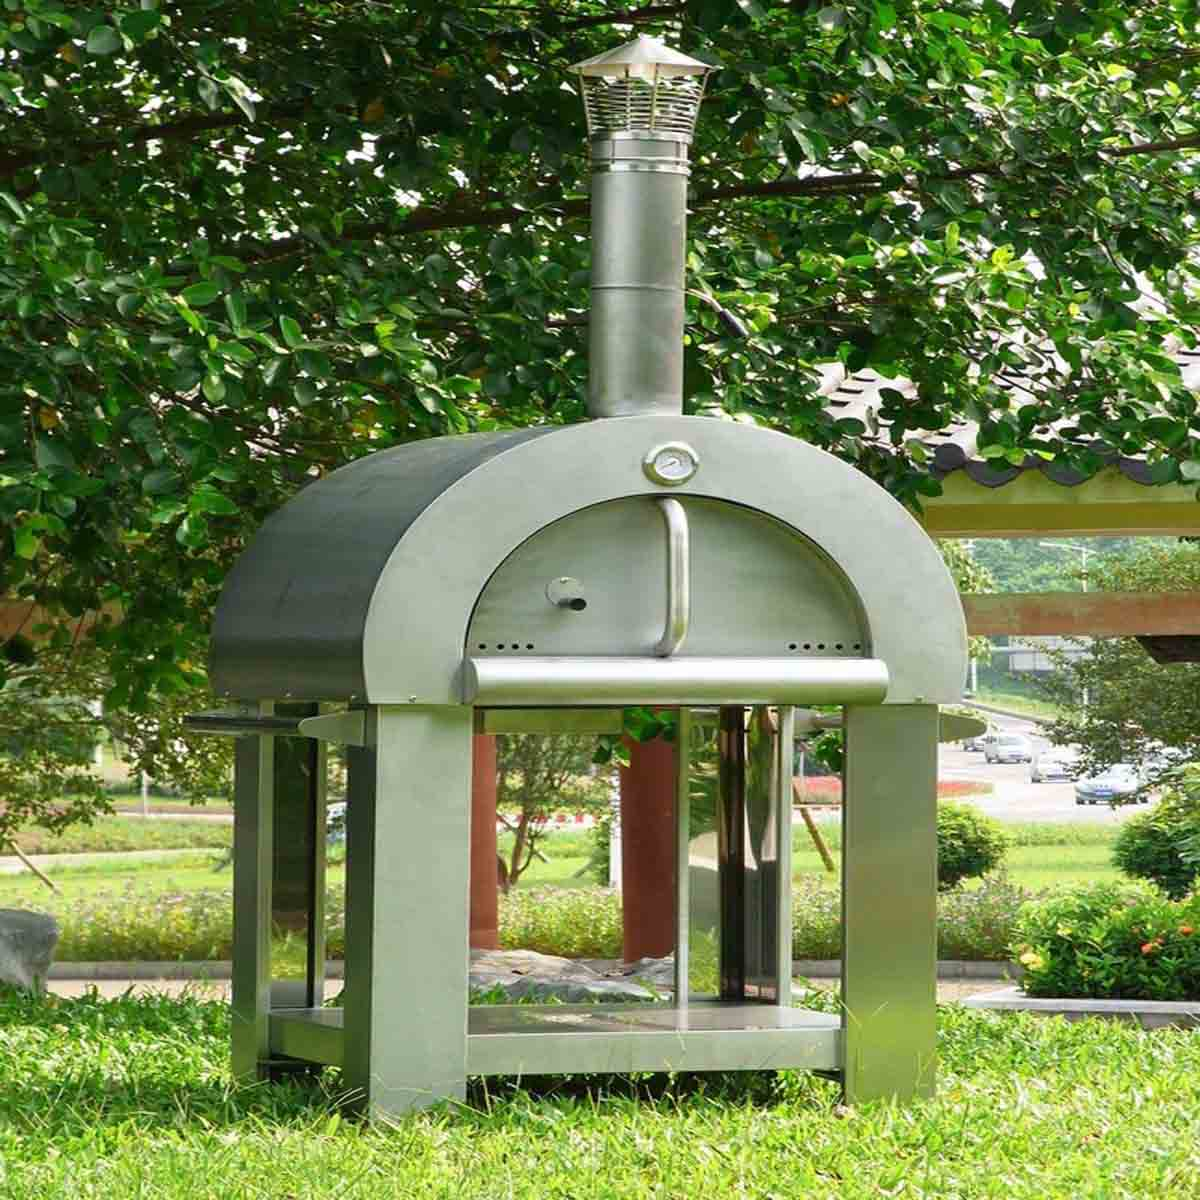 outdoor pizza oven outdoor pizza oven suppliers and manufacturers